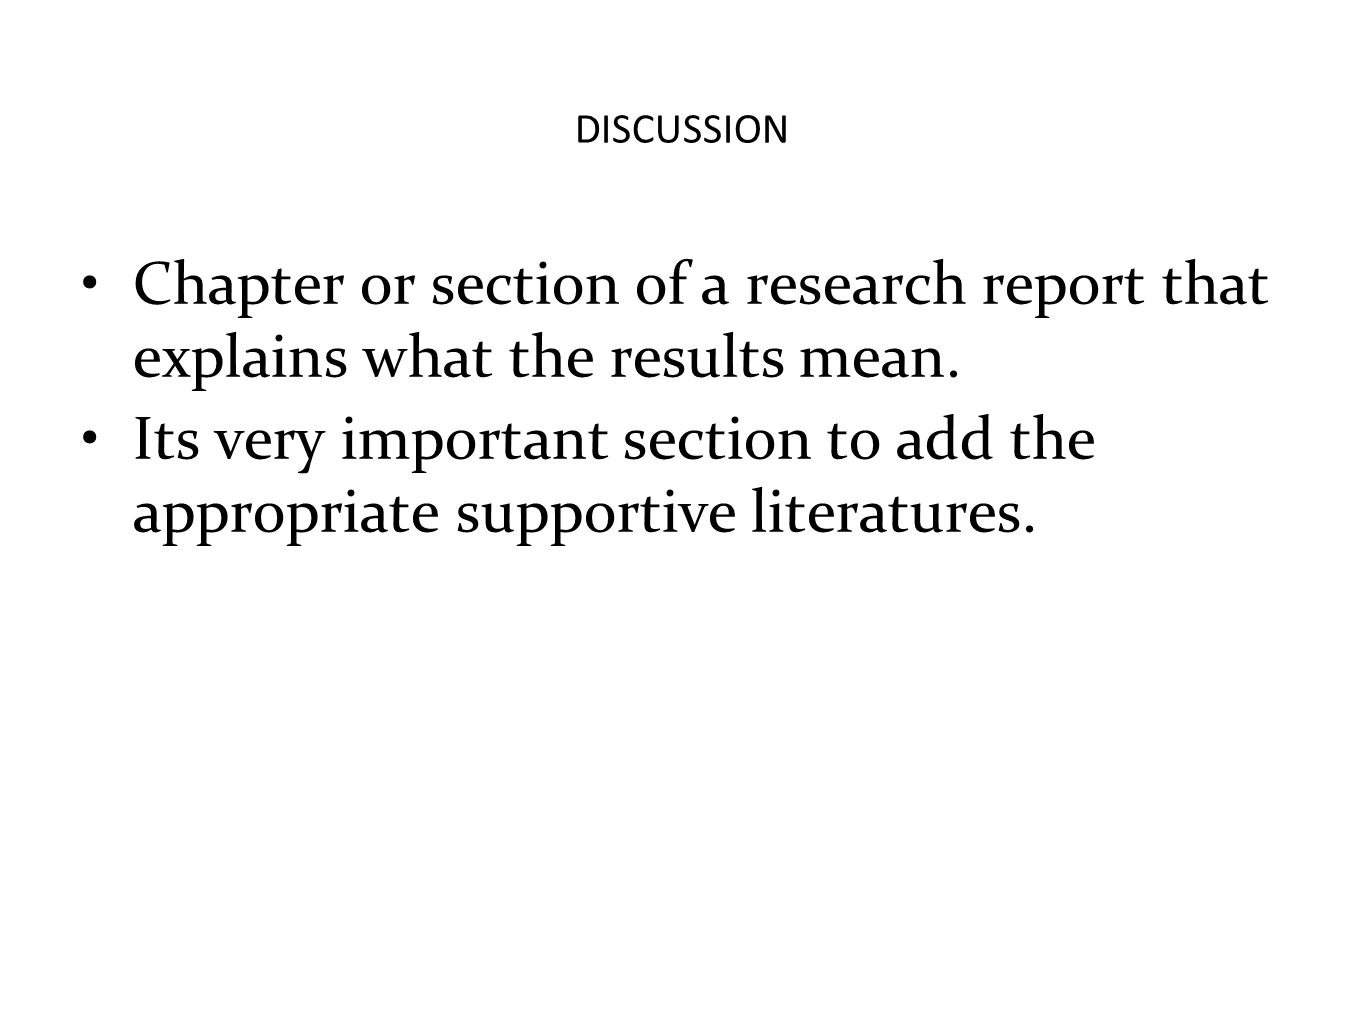 DISCUSSION Chapter or section of a research report that explains what the results mean.